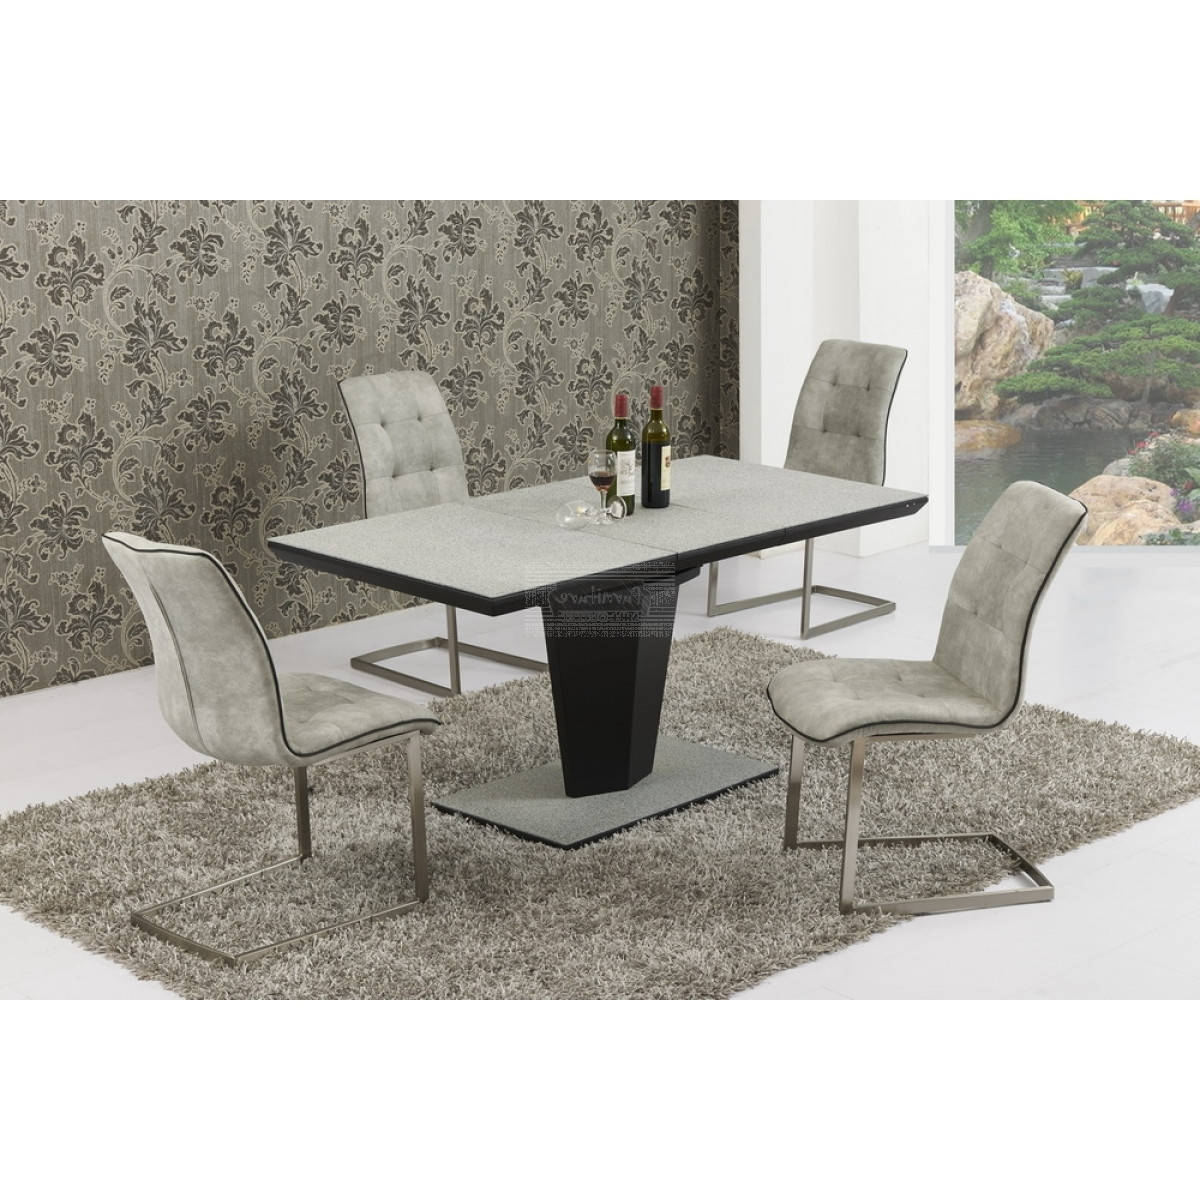 Current Stefano Stone Effect Extending Dining Table 160/220 – Furniture Mill For Marble Effect Dining Tables And Chairs (Gallery 14 of 25)